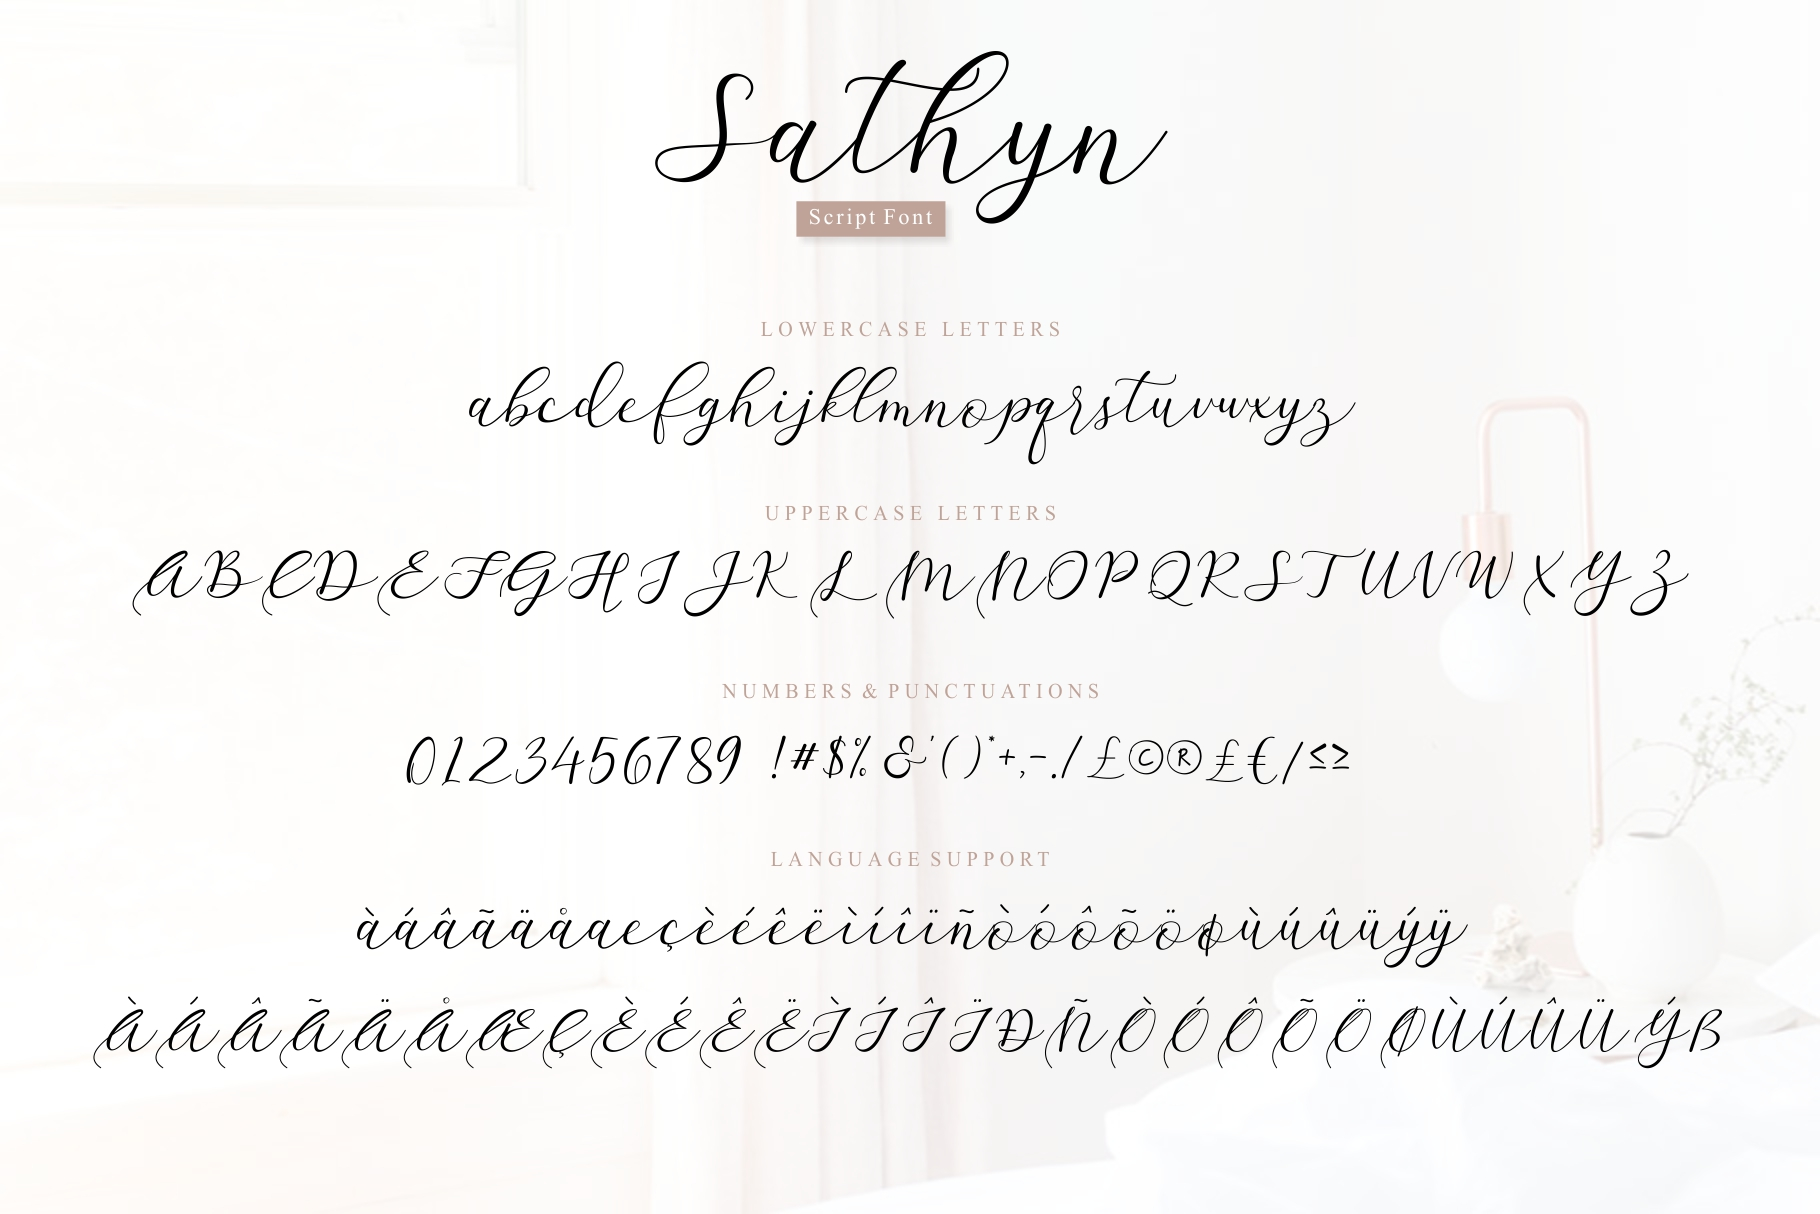 Sathyn Script Font example image 8